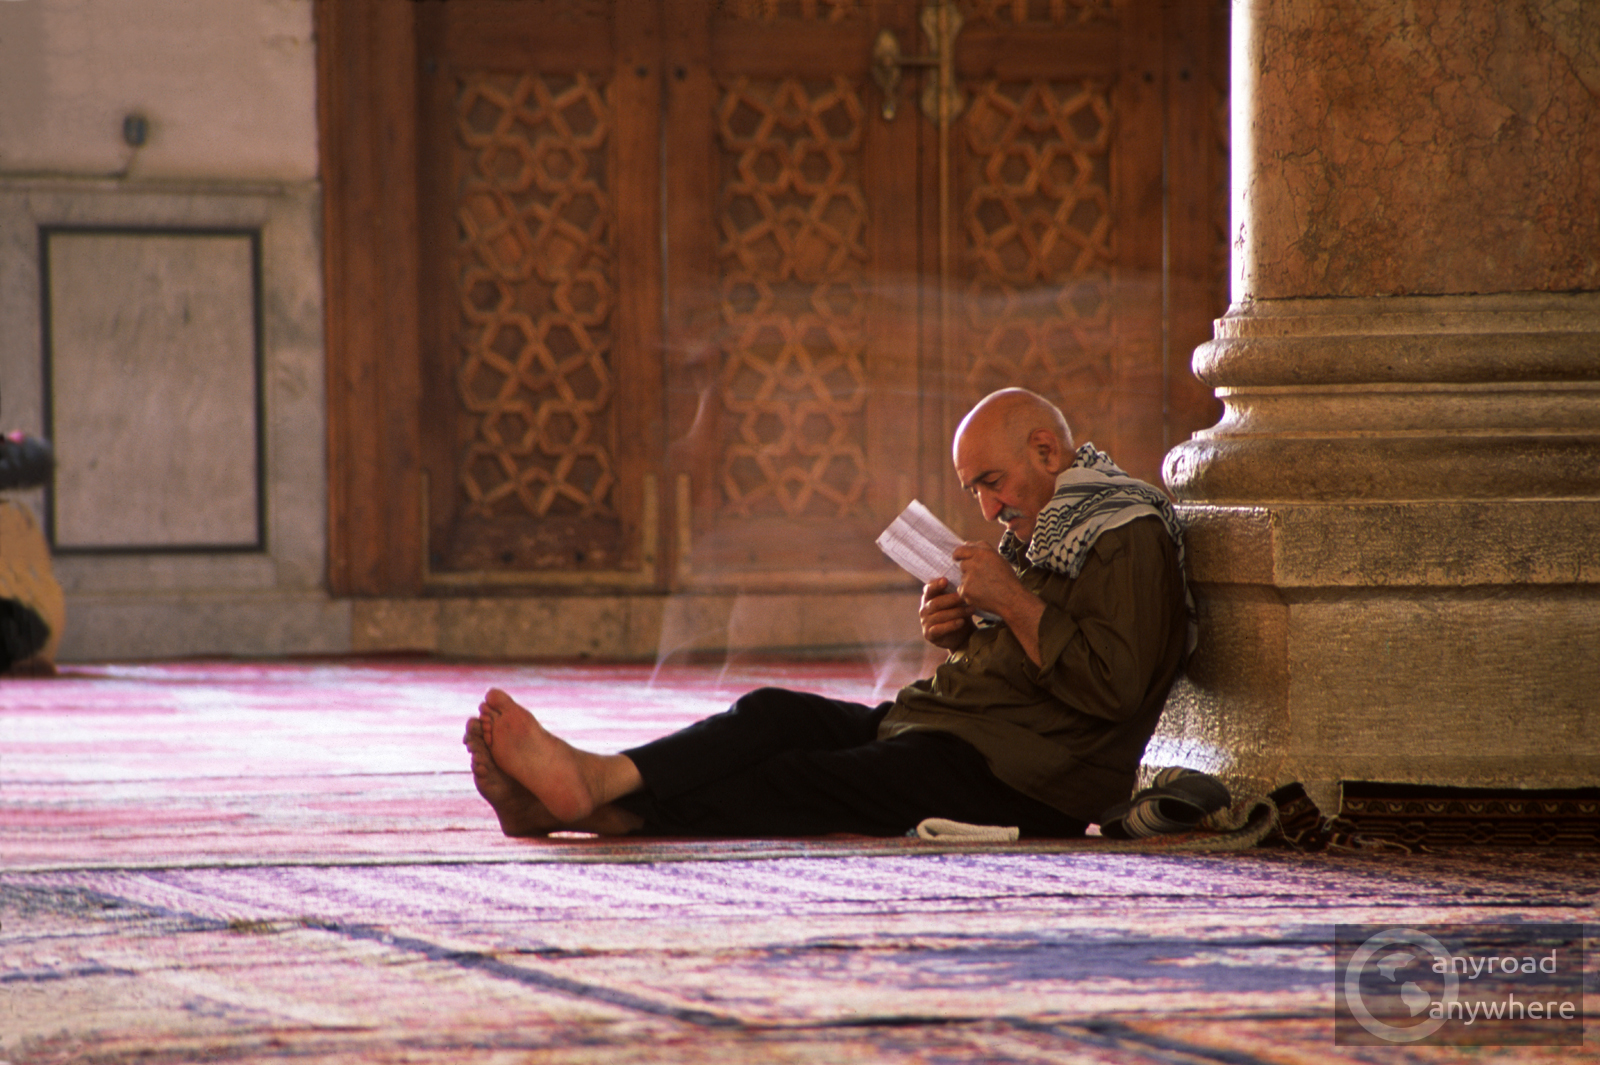 A man lost in his book in the Omayyad Mosque, Damascus